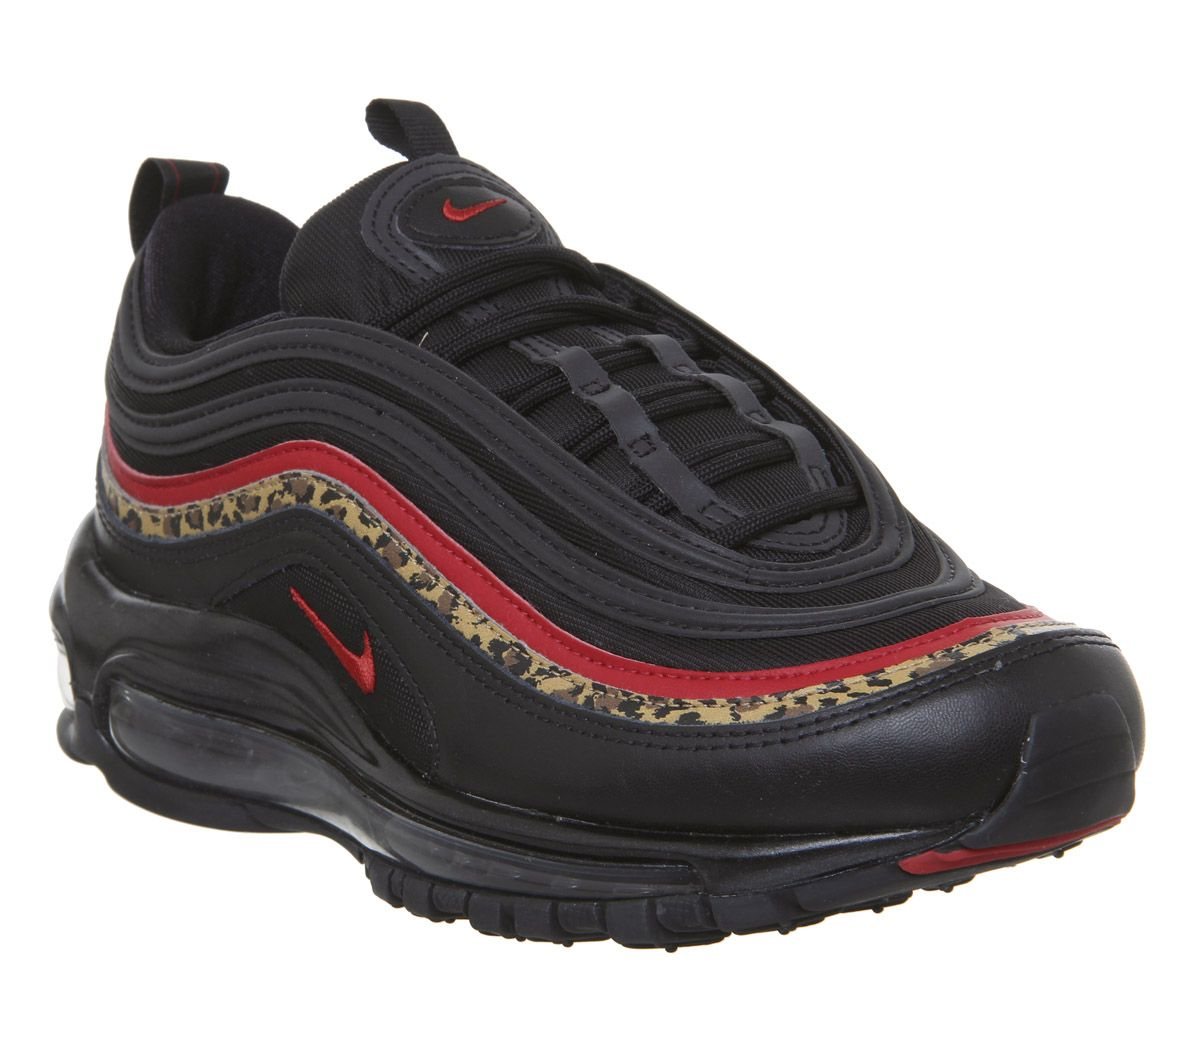 bf7fc324ab Nike Air Max 97 Trainers Black University Red Leopard - Hers trainers